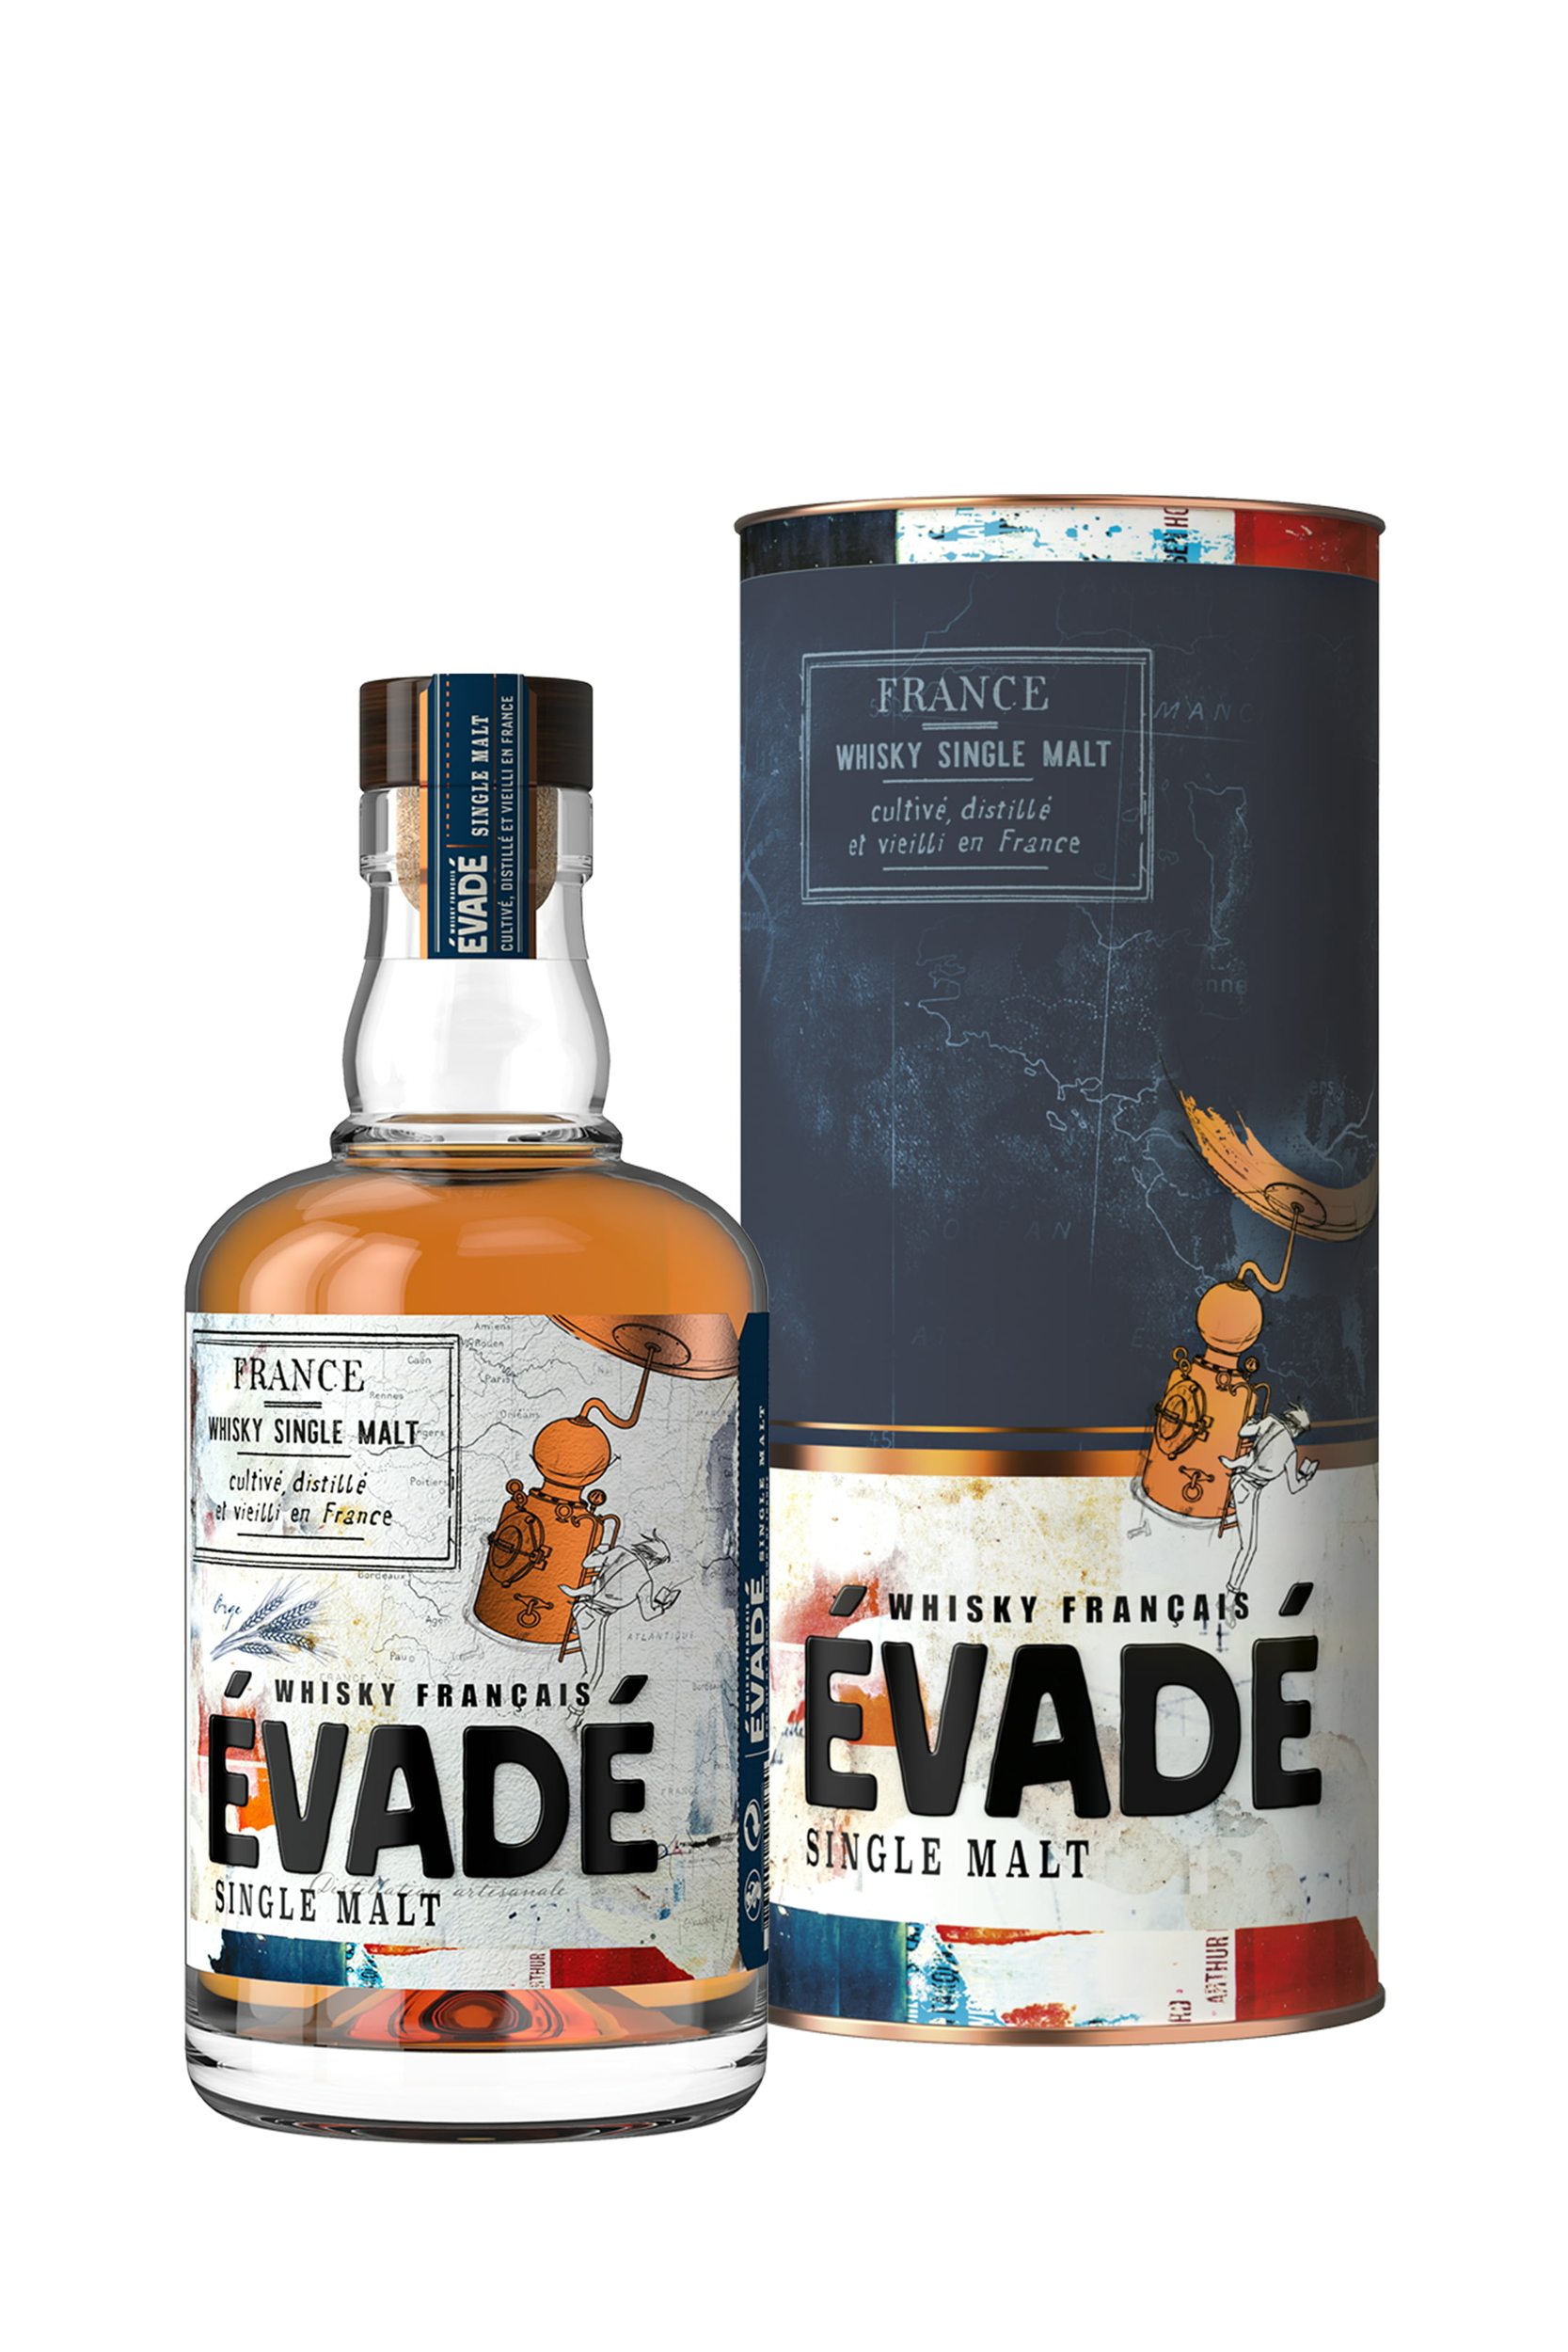 ÉVADÉ Single Malt 40% | Whisky Français